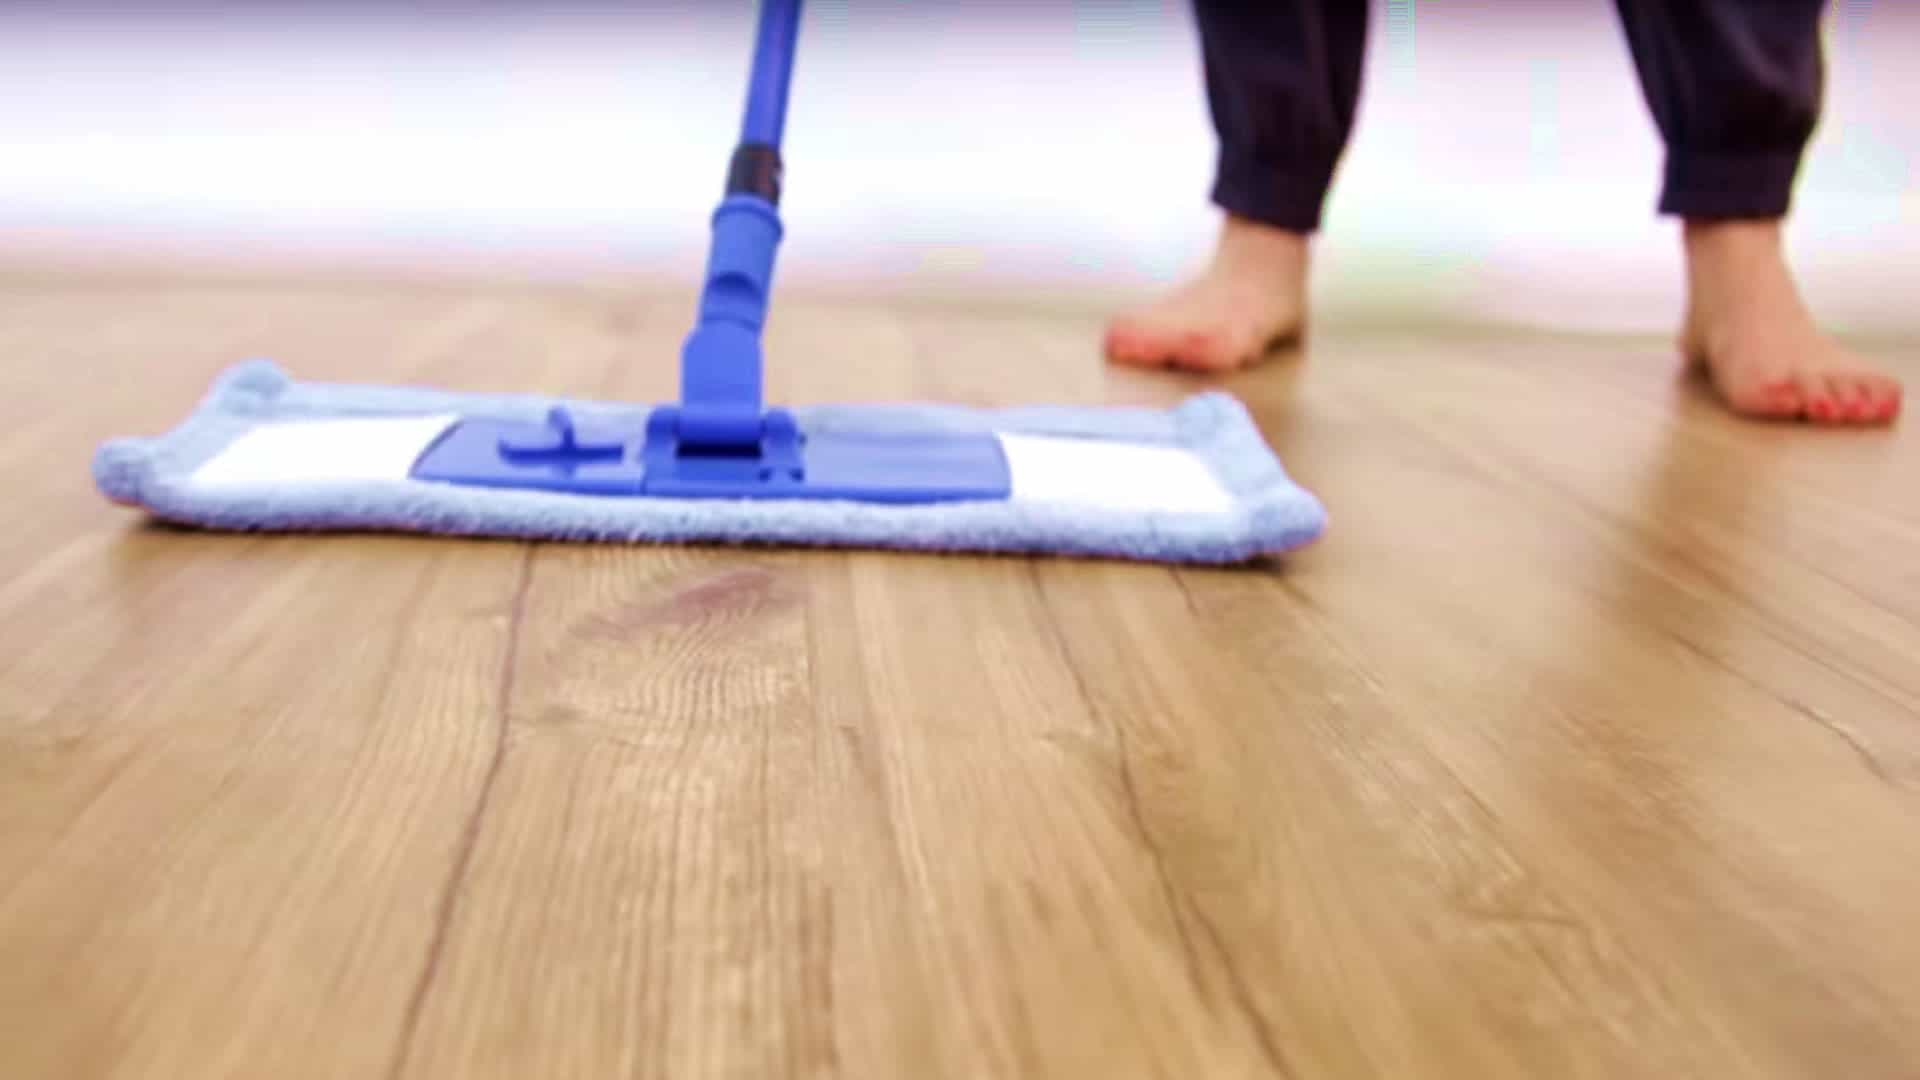 Laminate Floor Cleaner  Day 9  31 Days of DIY Cleaners